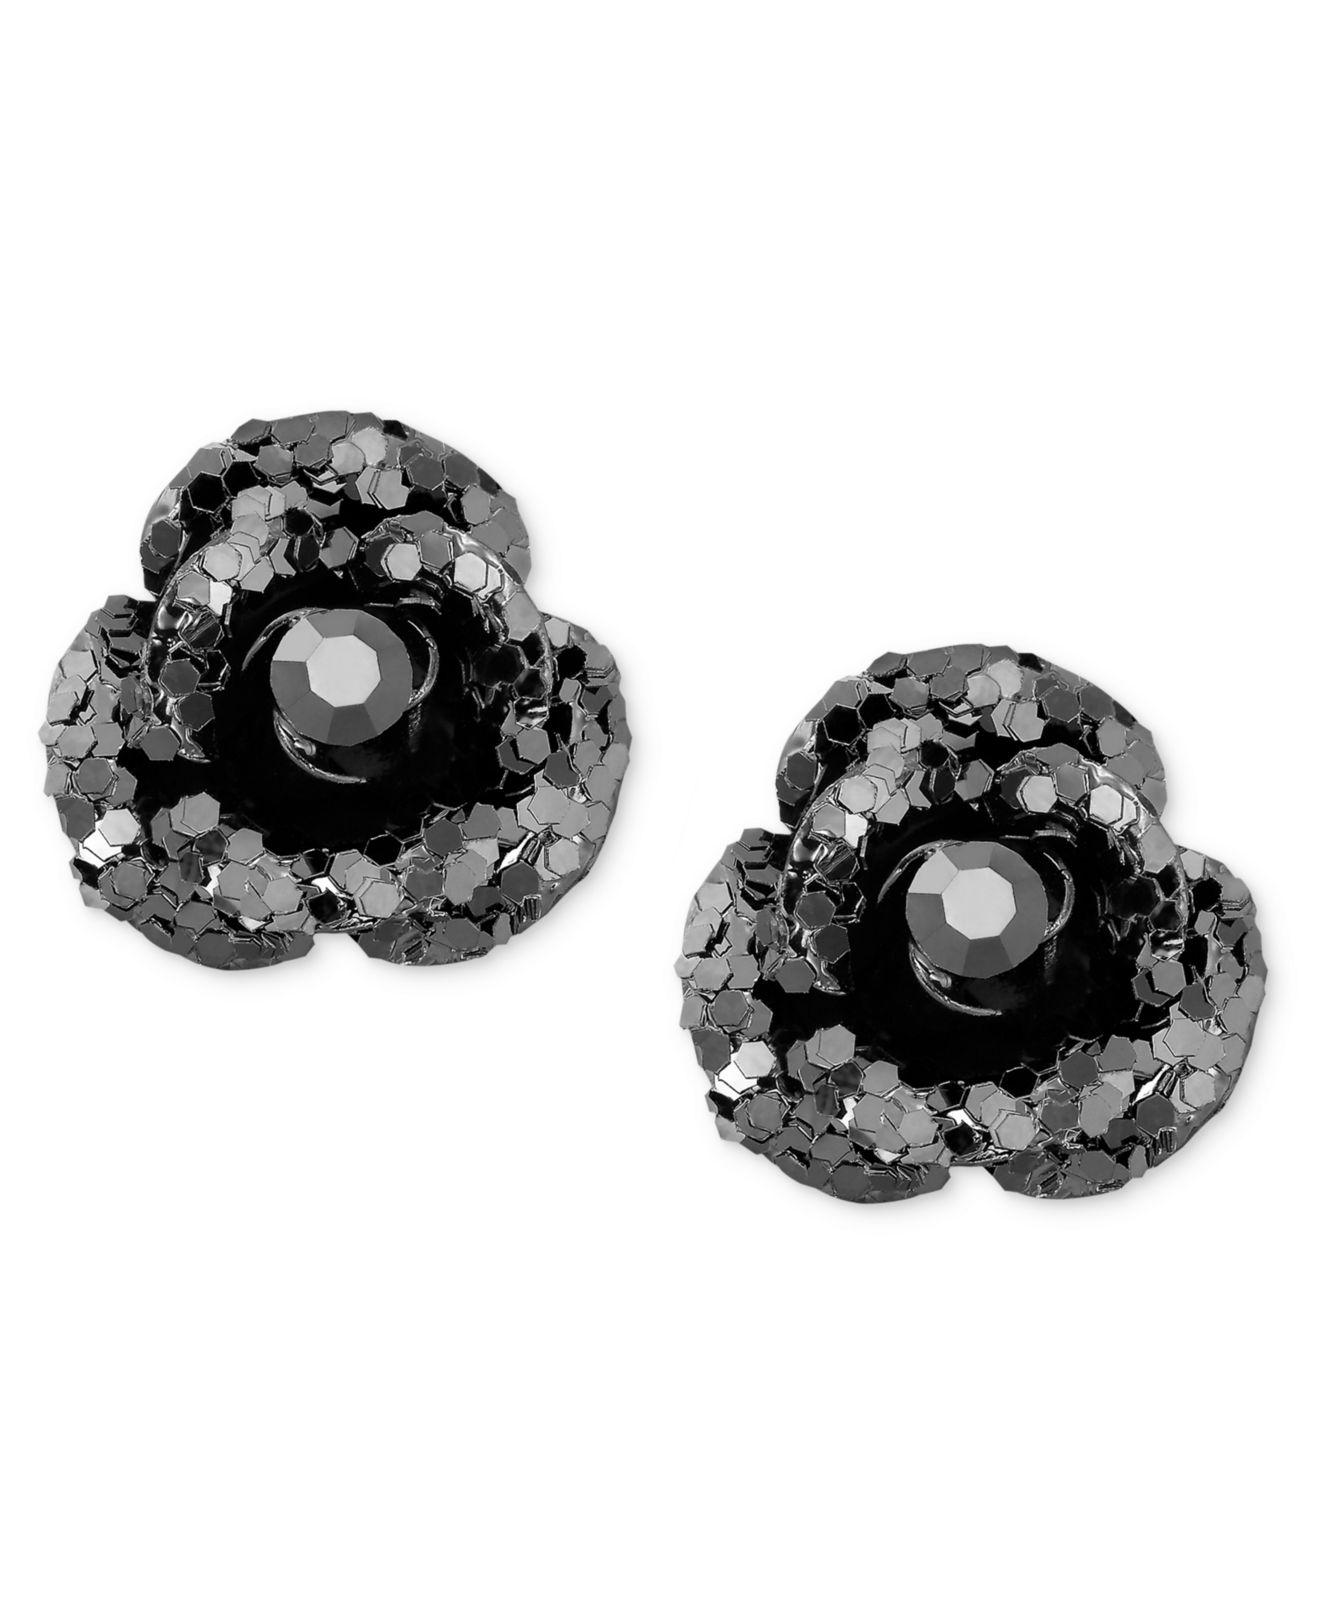 larger stud view bonbon diamond l ball black paris tresor earrings hematite crystal